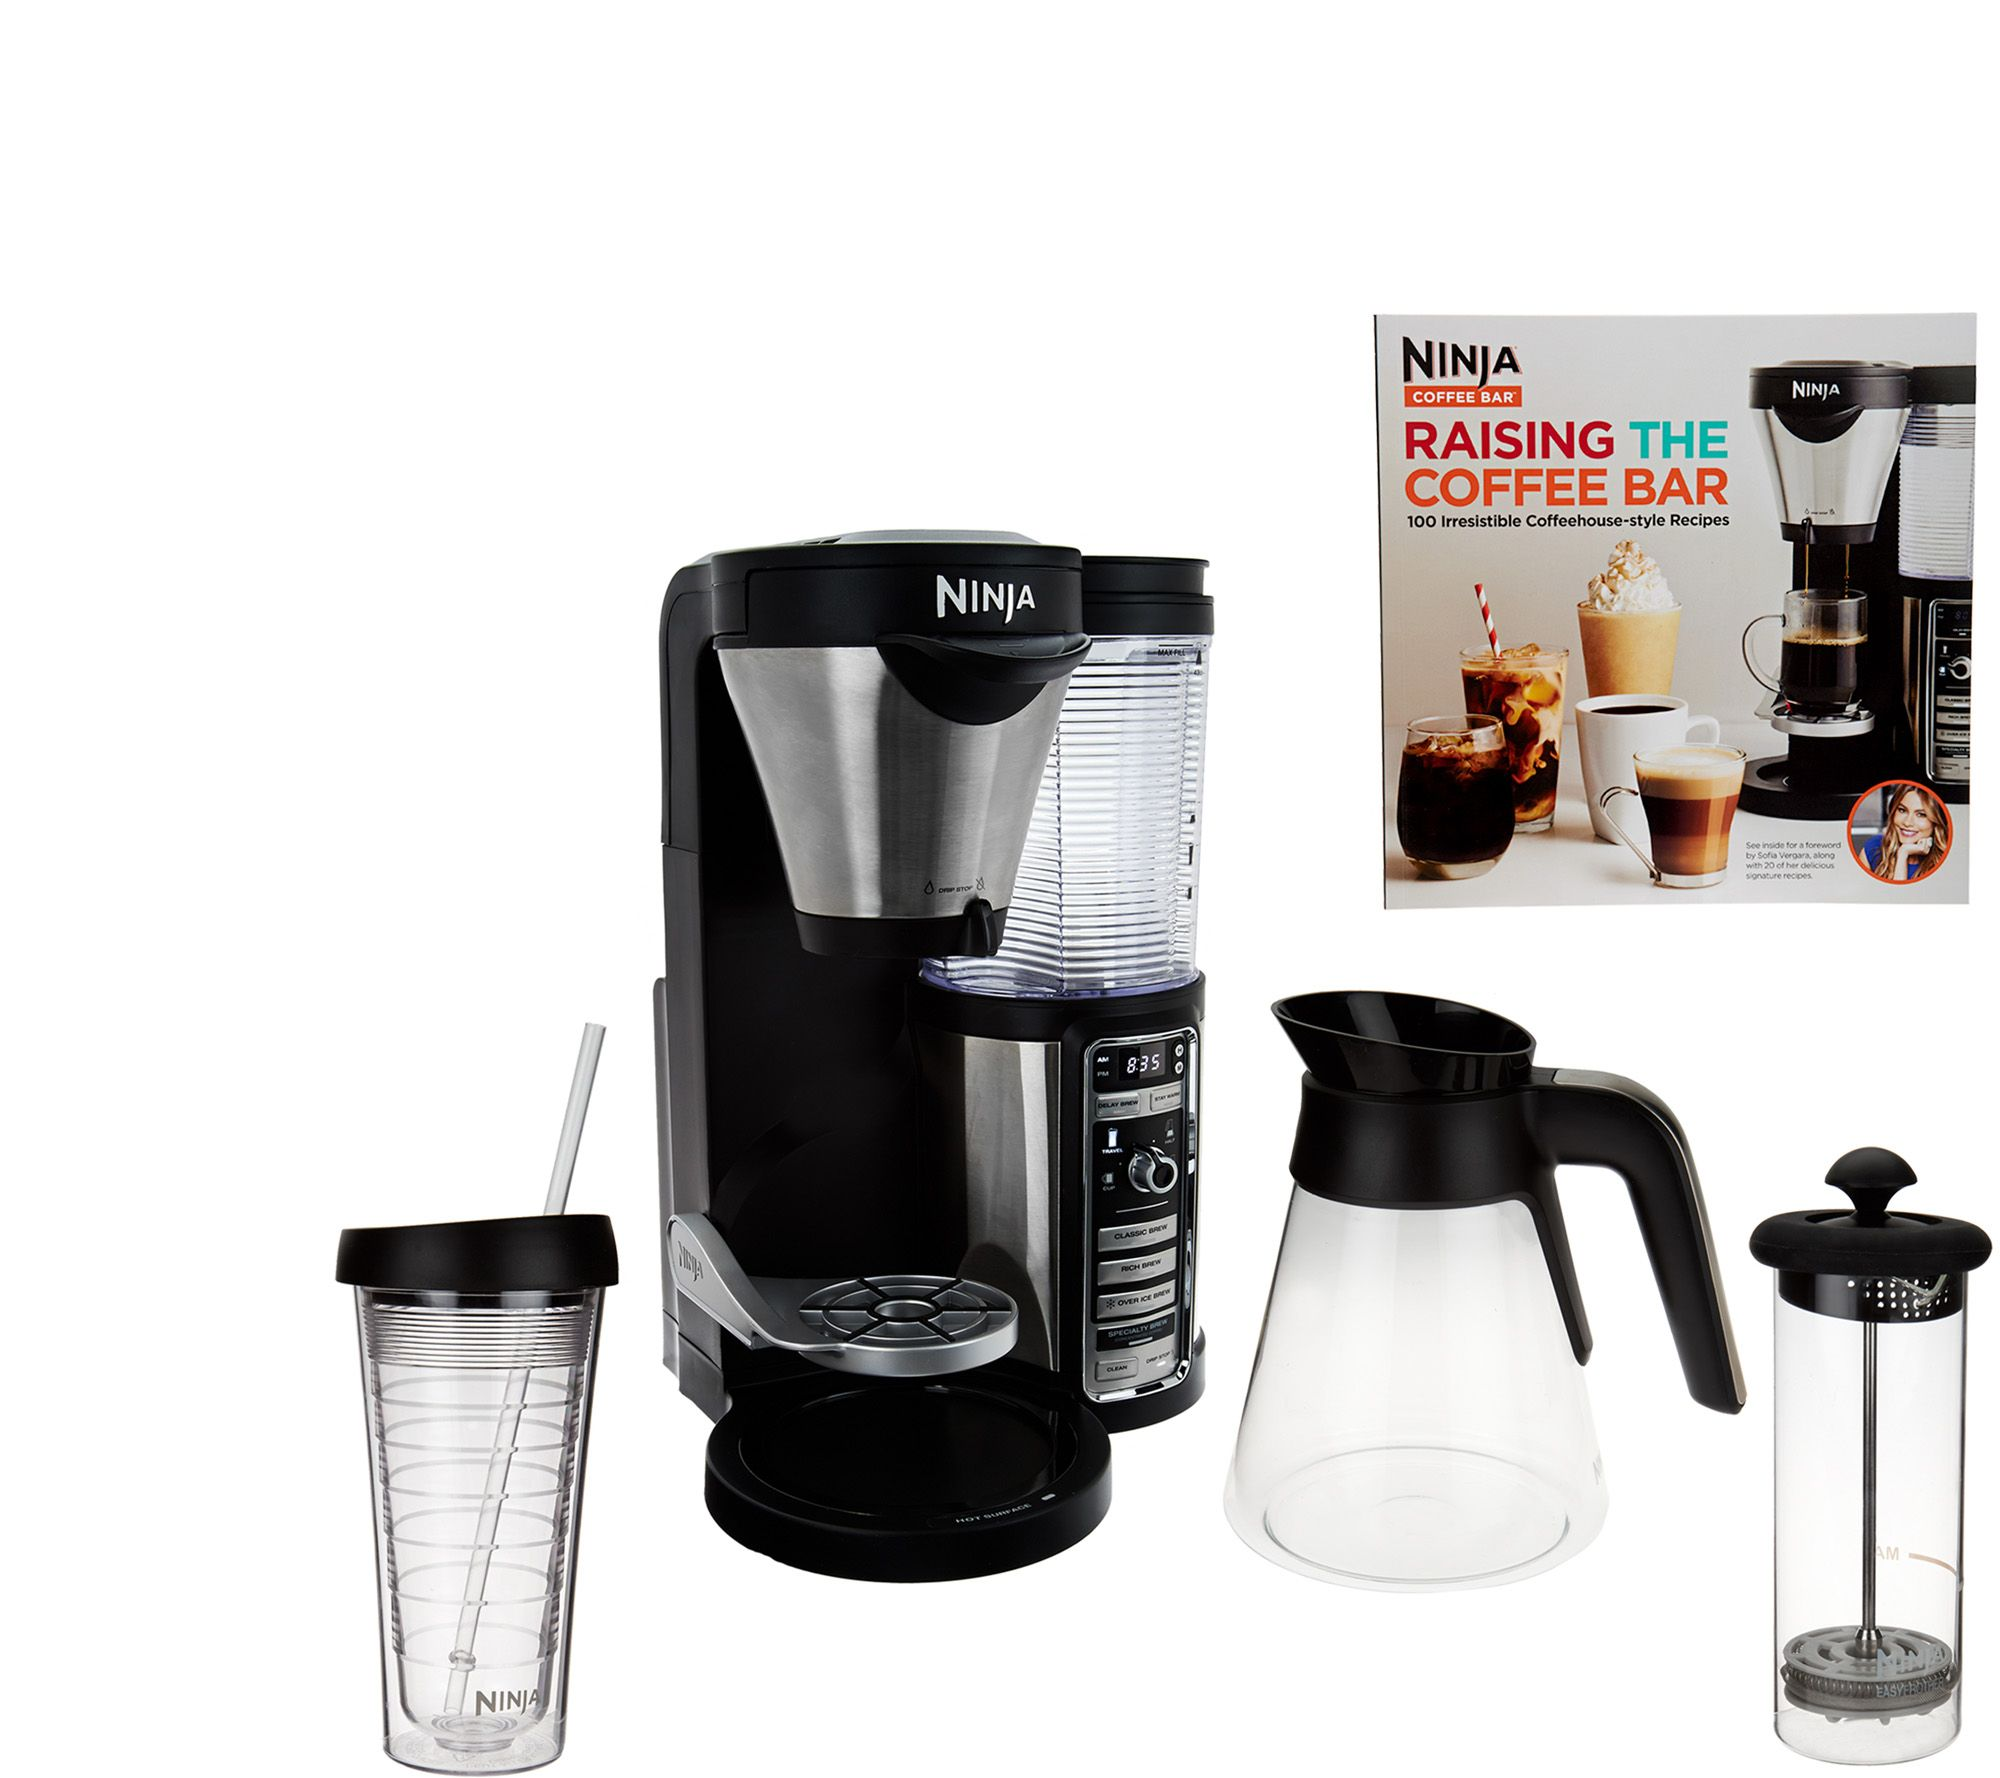 Ninja Coffee Maker Warranty : Ninja Coffee Bar Auto-iQ Coffee Maker w/ Glass Carafe & Recipe Book - Page 1 QVC.com